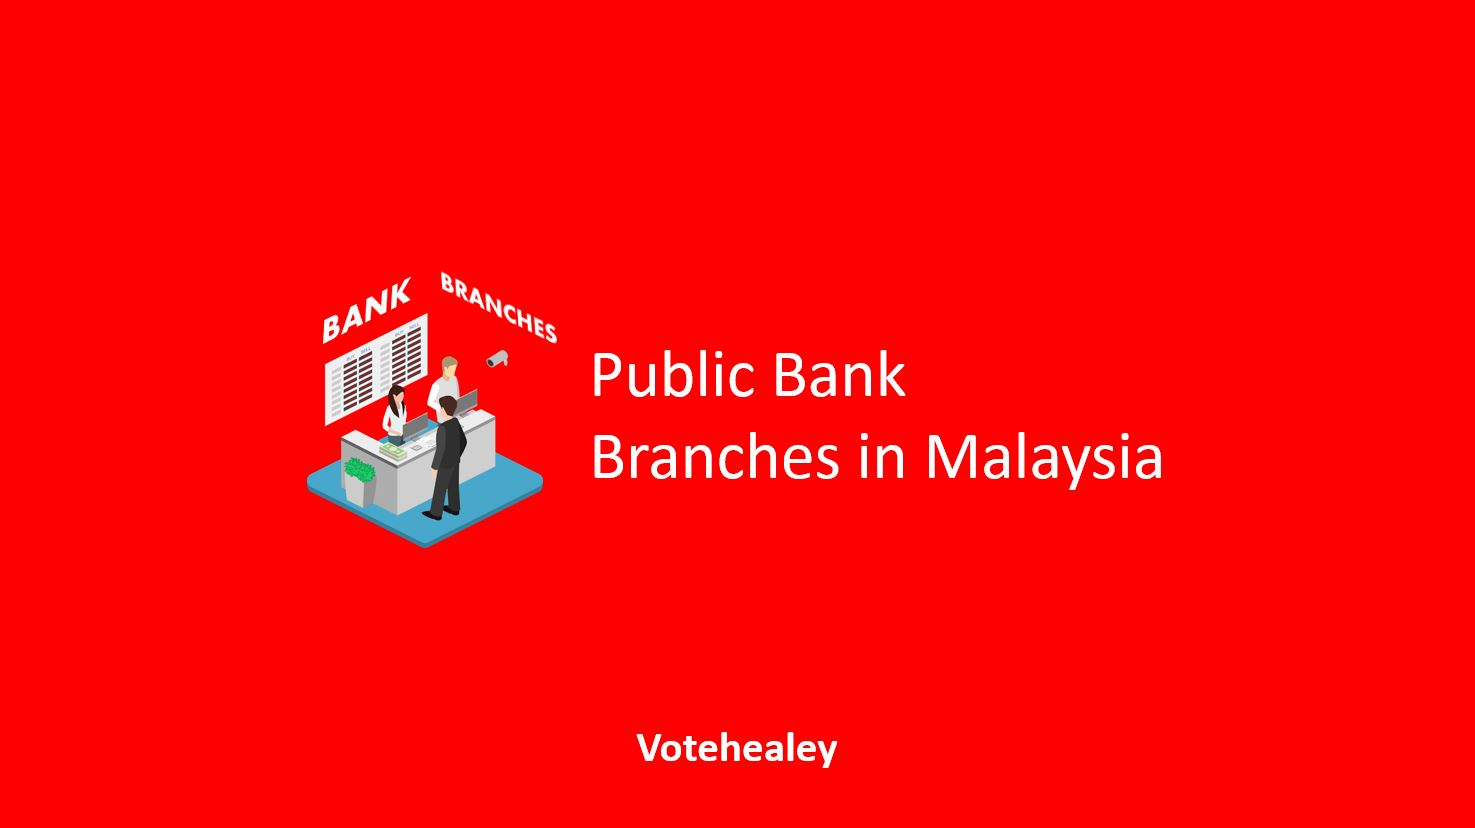 Public Bank Branches in Malaysia